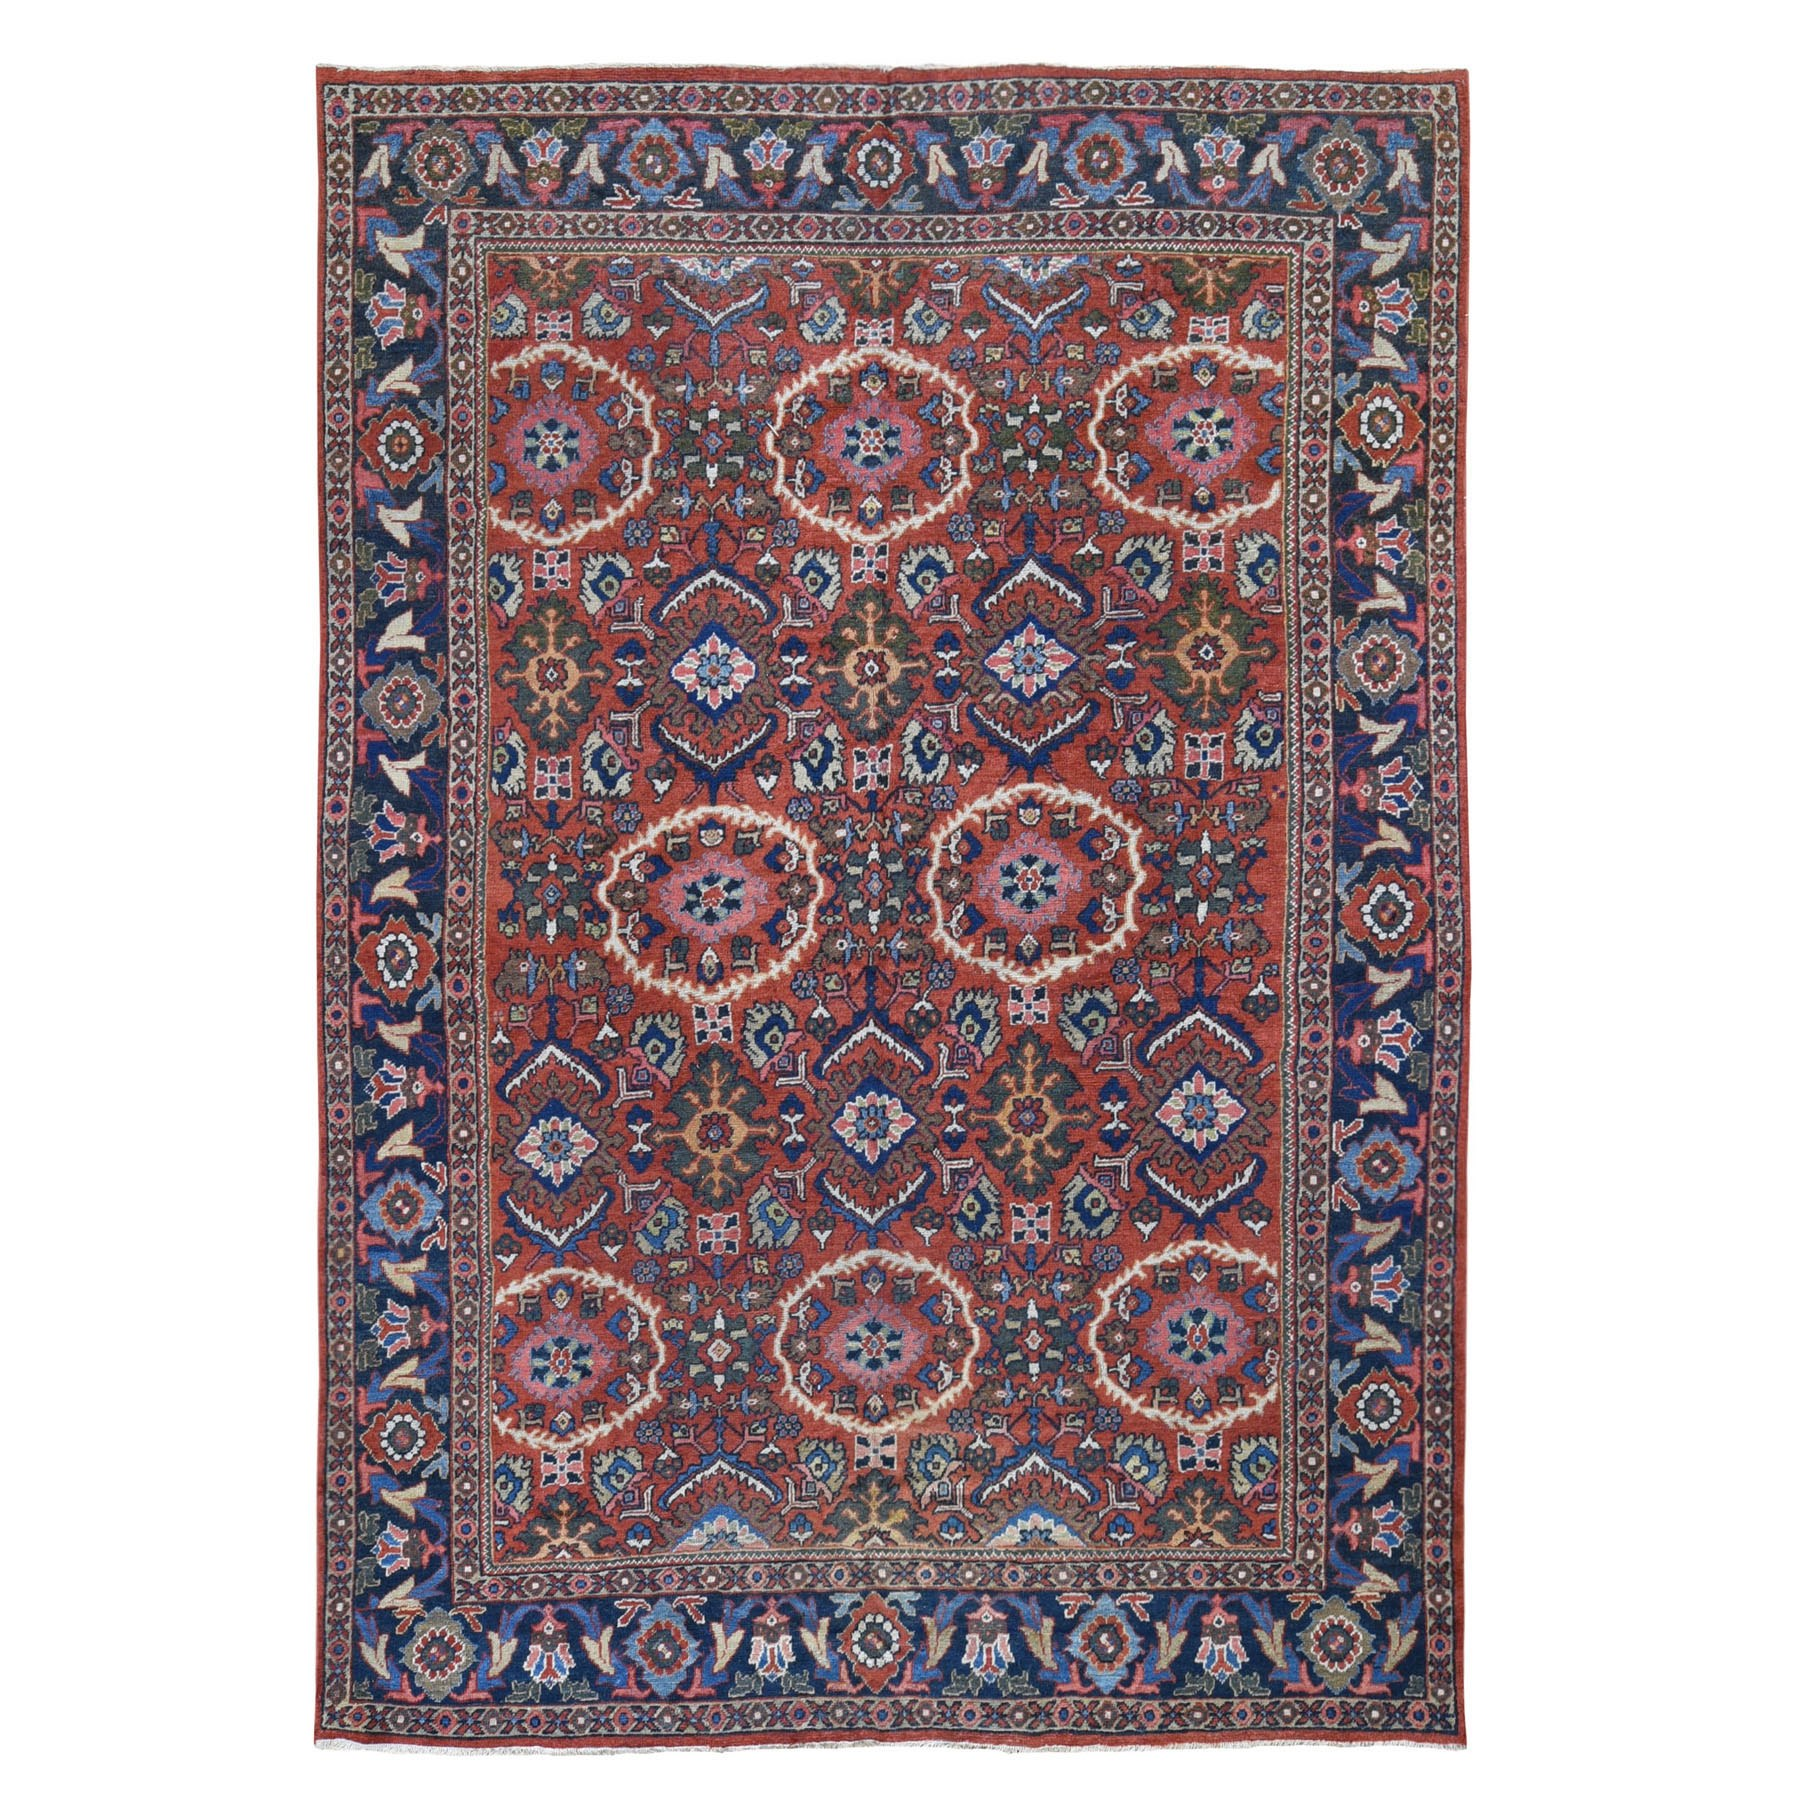 Antique Collection Hand Knotted Red Rug No: 0199288